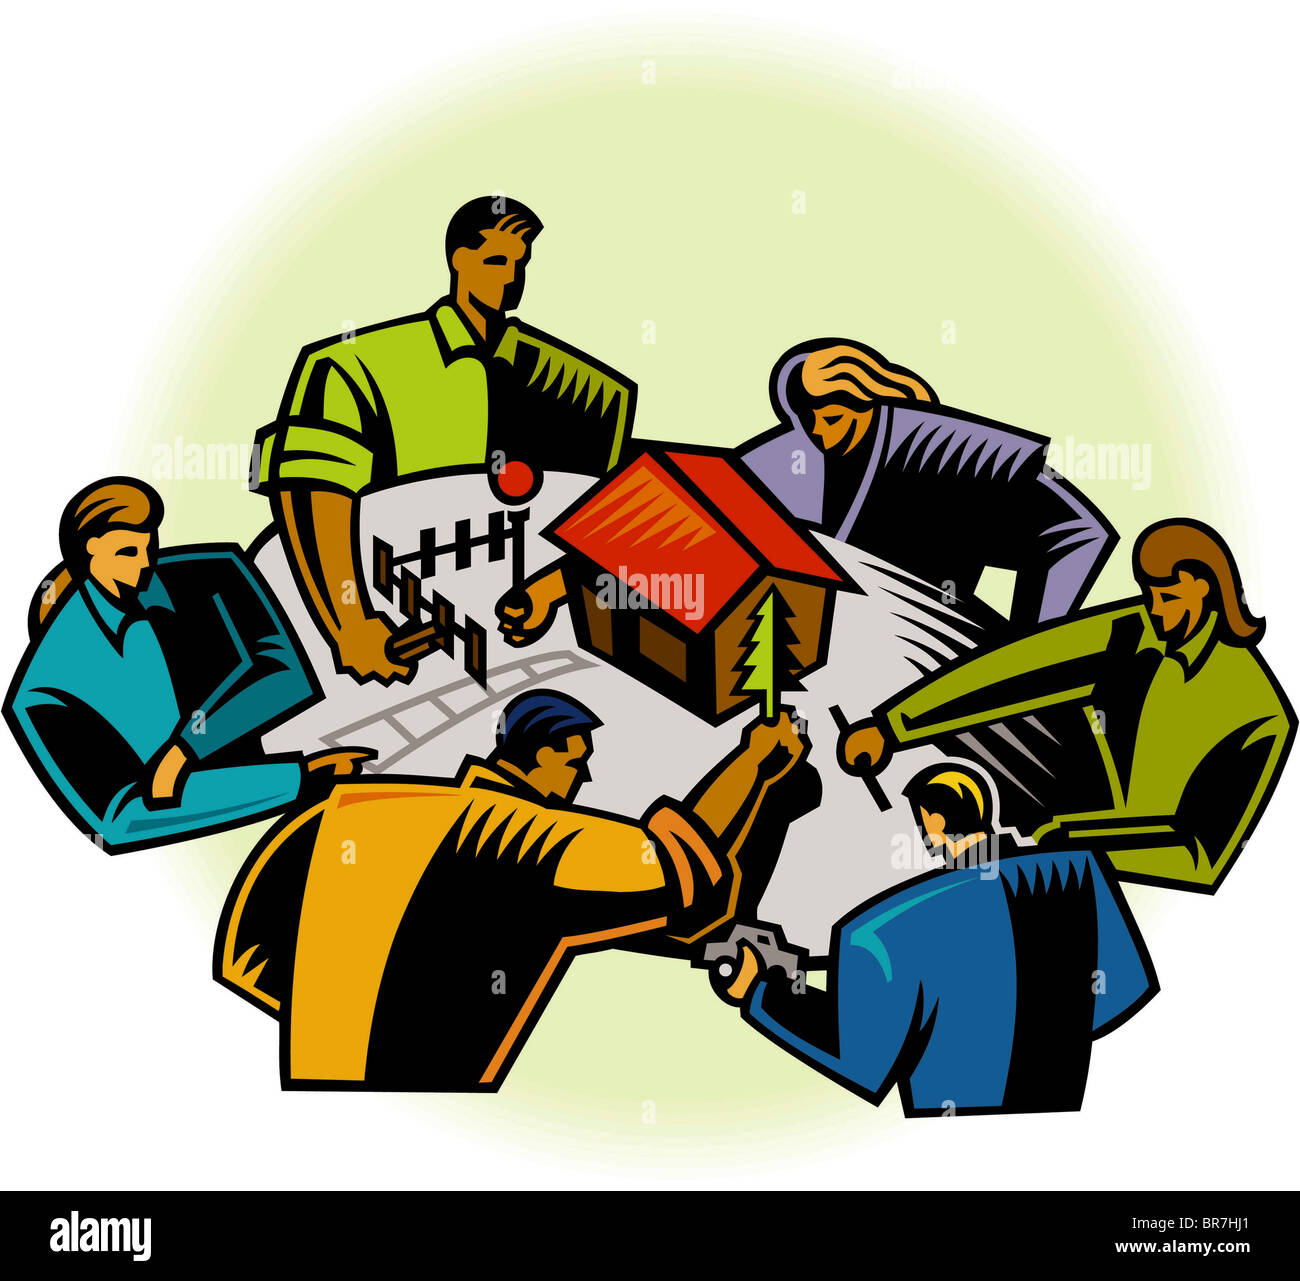 A group of people working on a scale model of a home - Stock Image